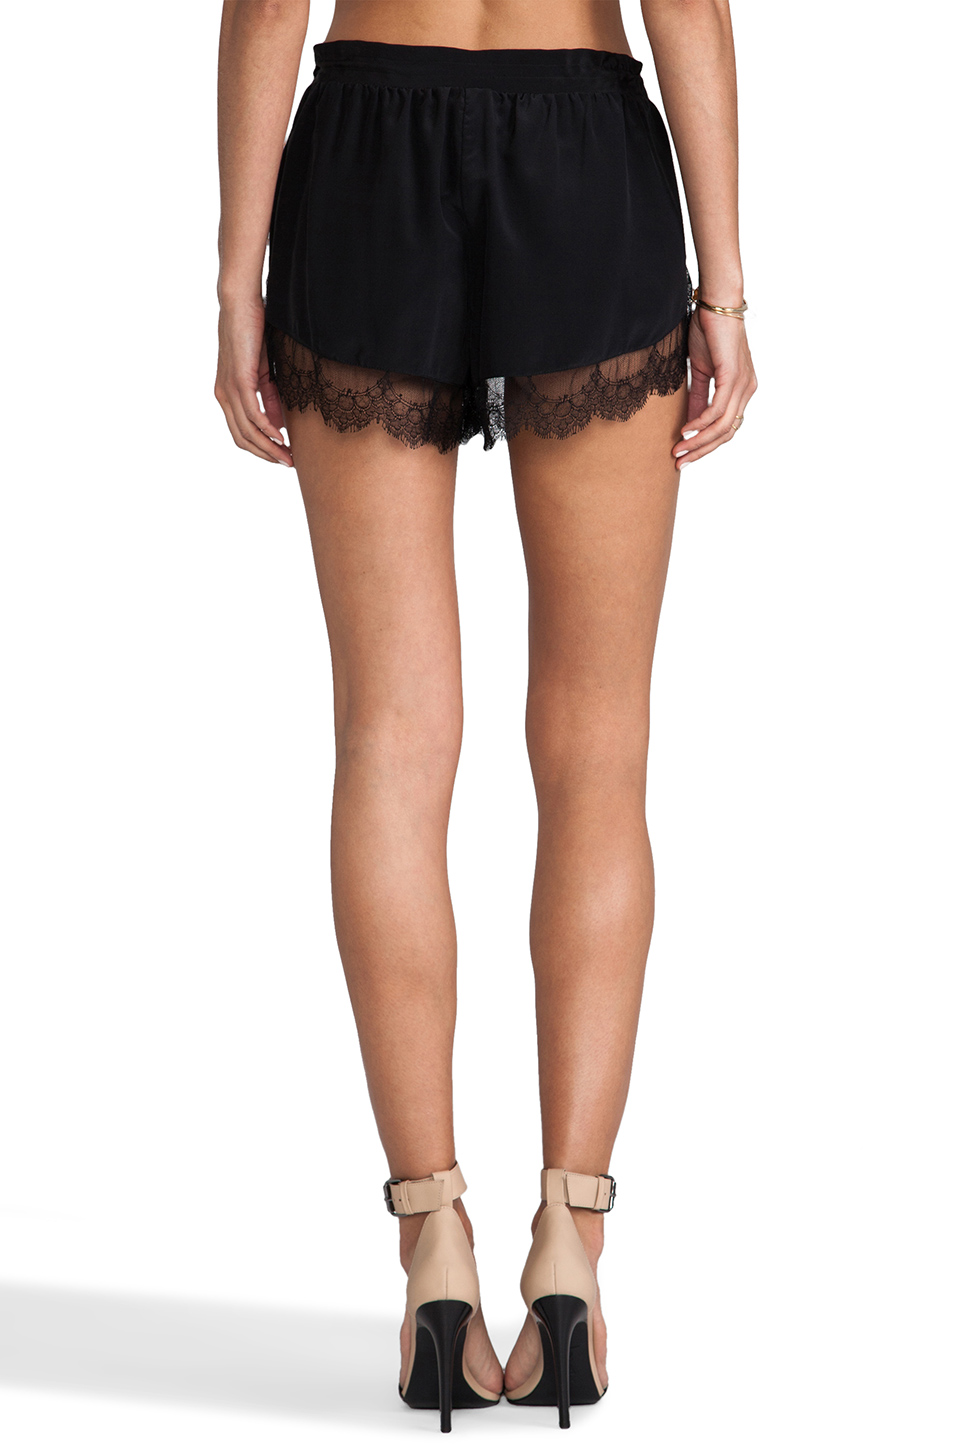 Mason by Michelle Mason Lace Trim Shorts in Black | REVOLVE